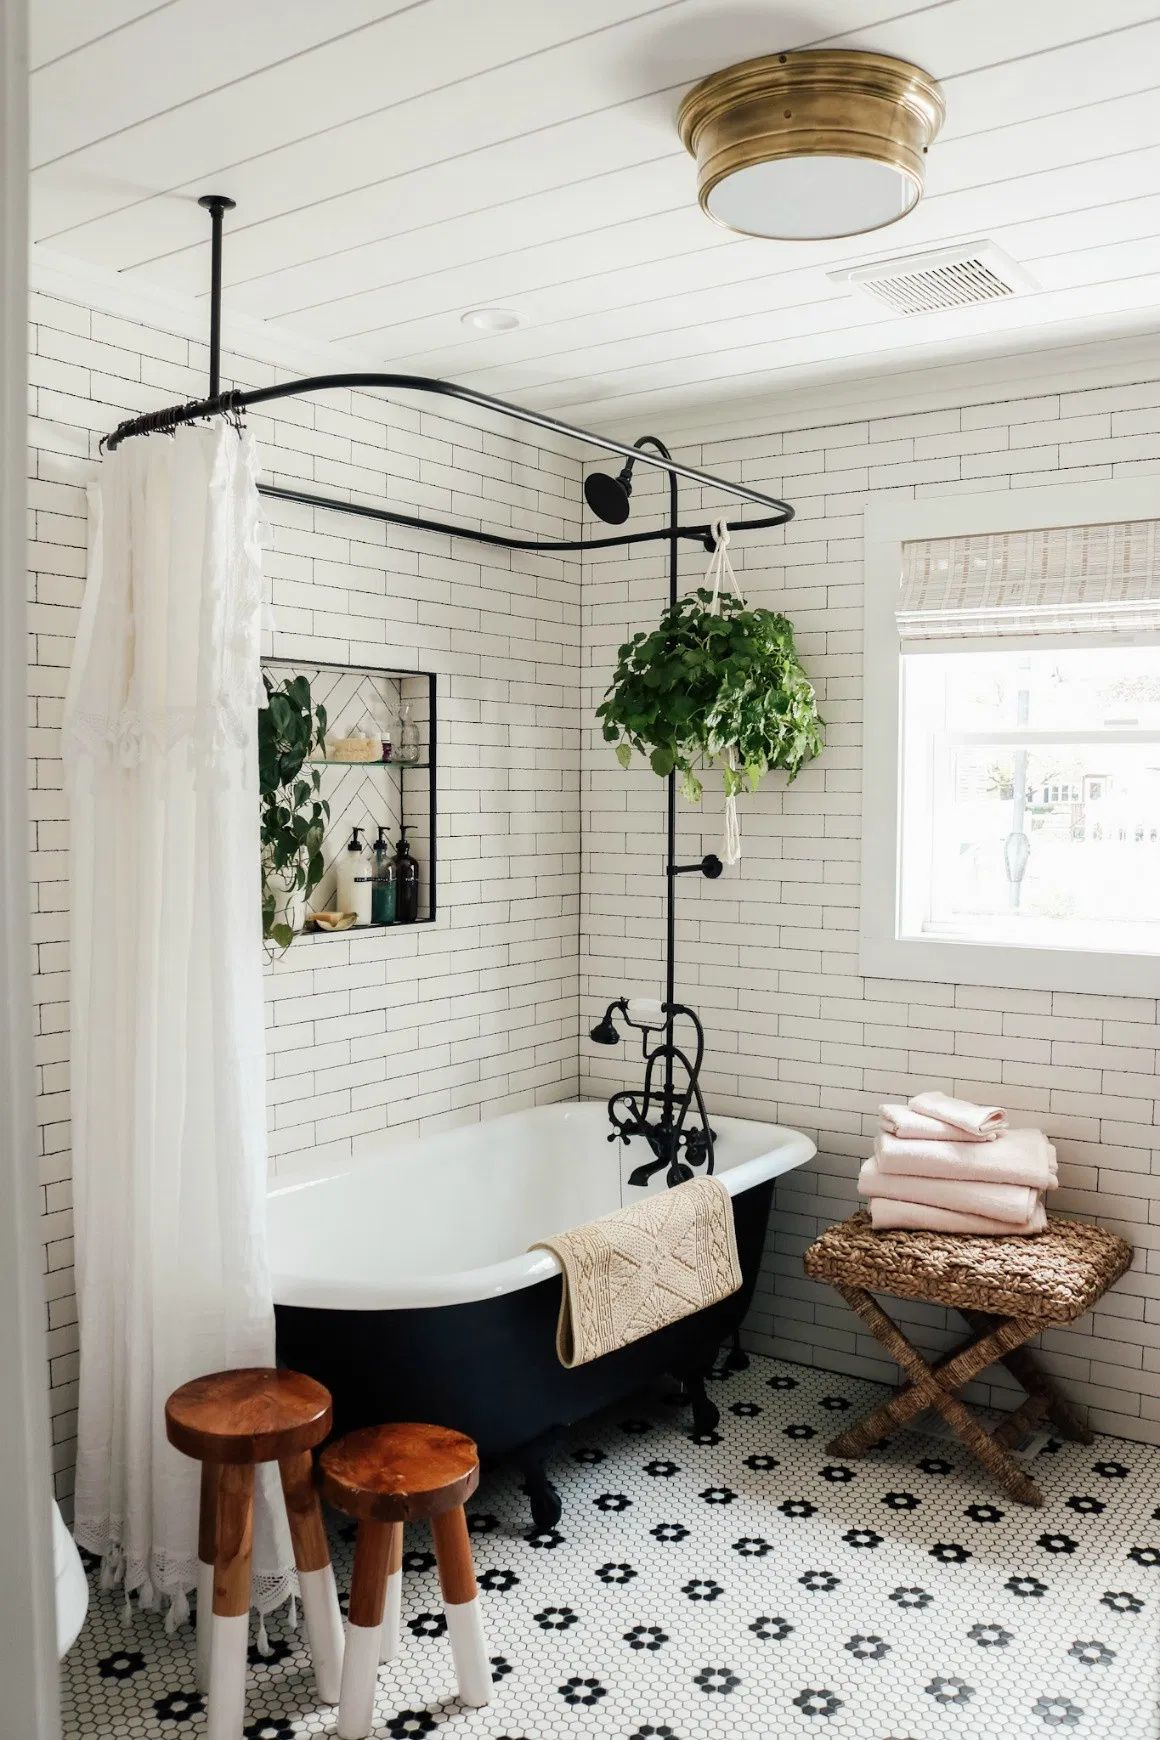 Photo of master bathroom reveal with claw foot tub – nestingwithgrace.com